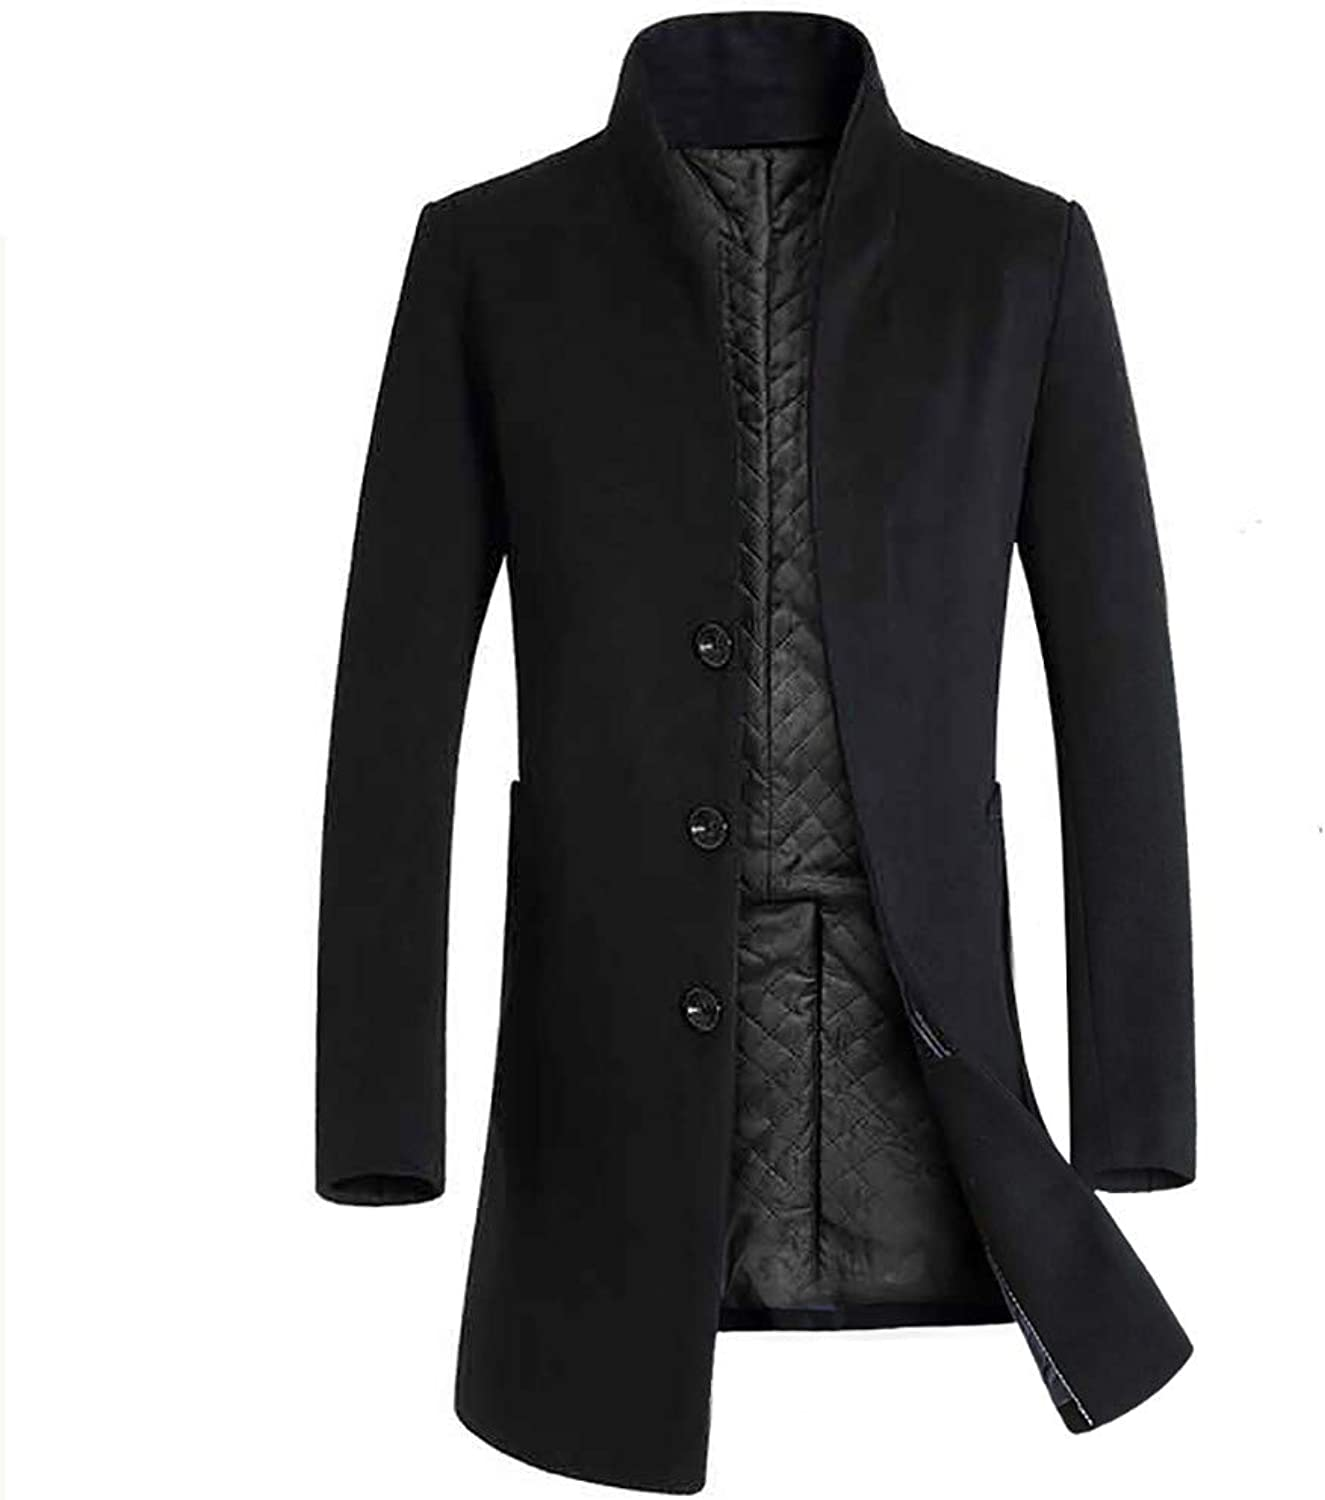 3f9dedb054c LISTHA Suit Cardigan Men's Warm Winter Winter Winter Coat Long Trench Jacket  Slim Overcoat f23a1f